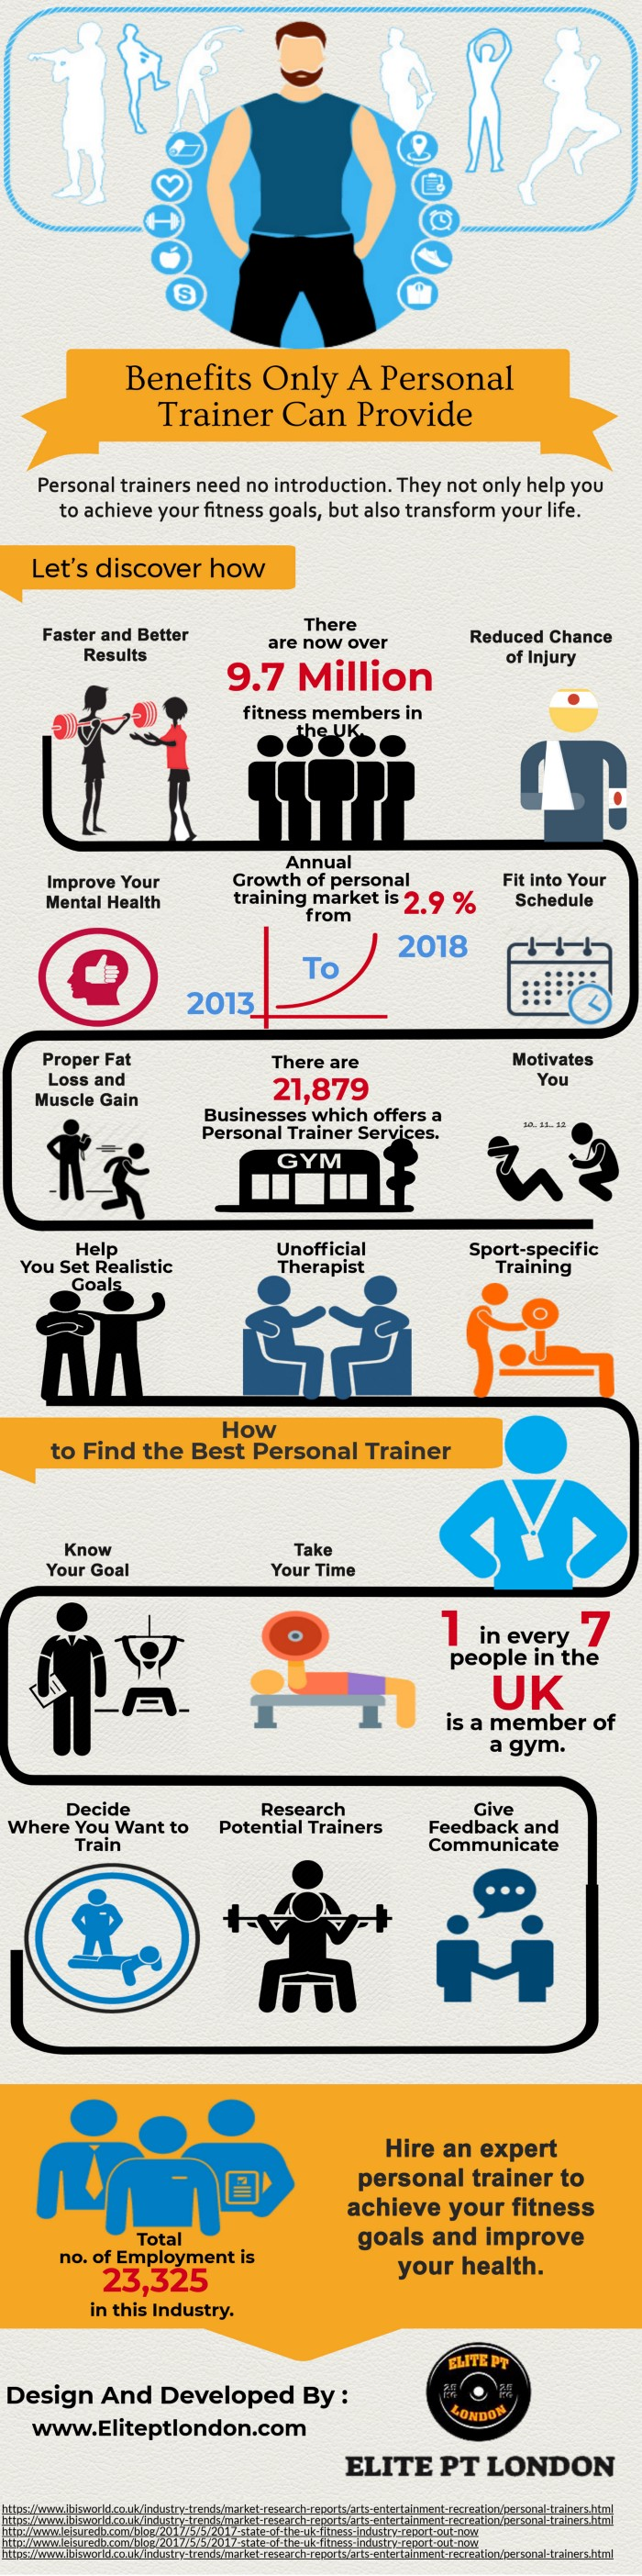 Benefits Only A Personal Trainer Can Provide